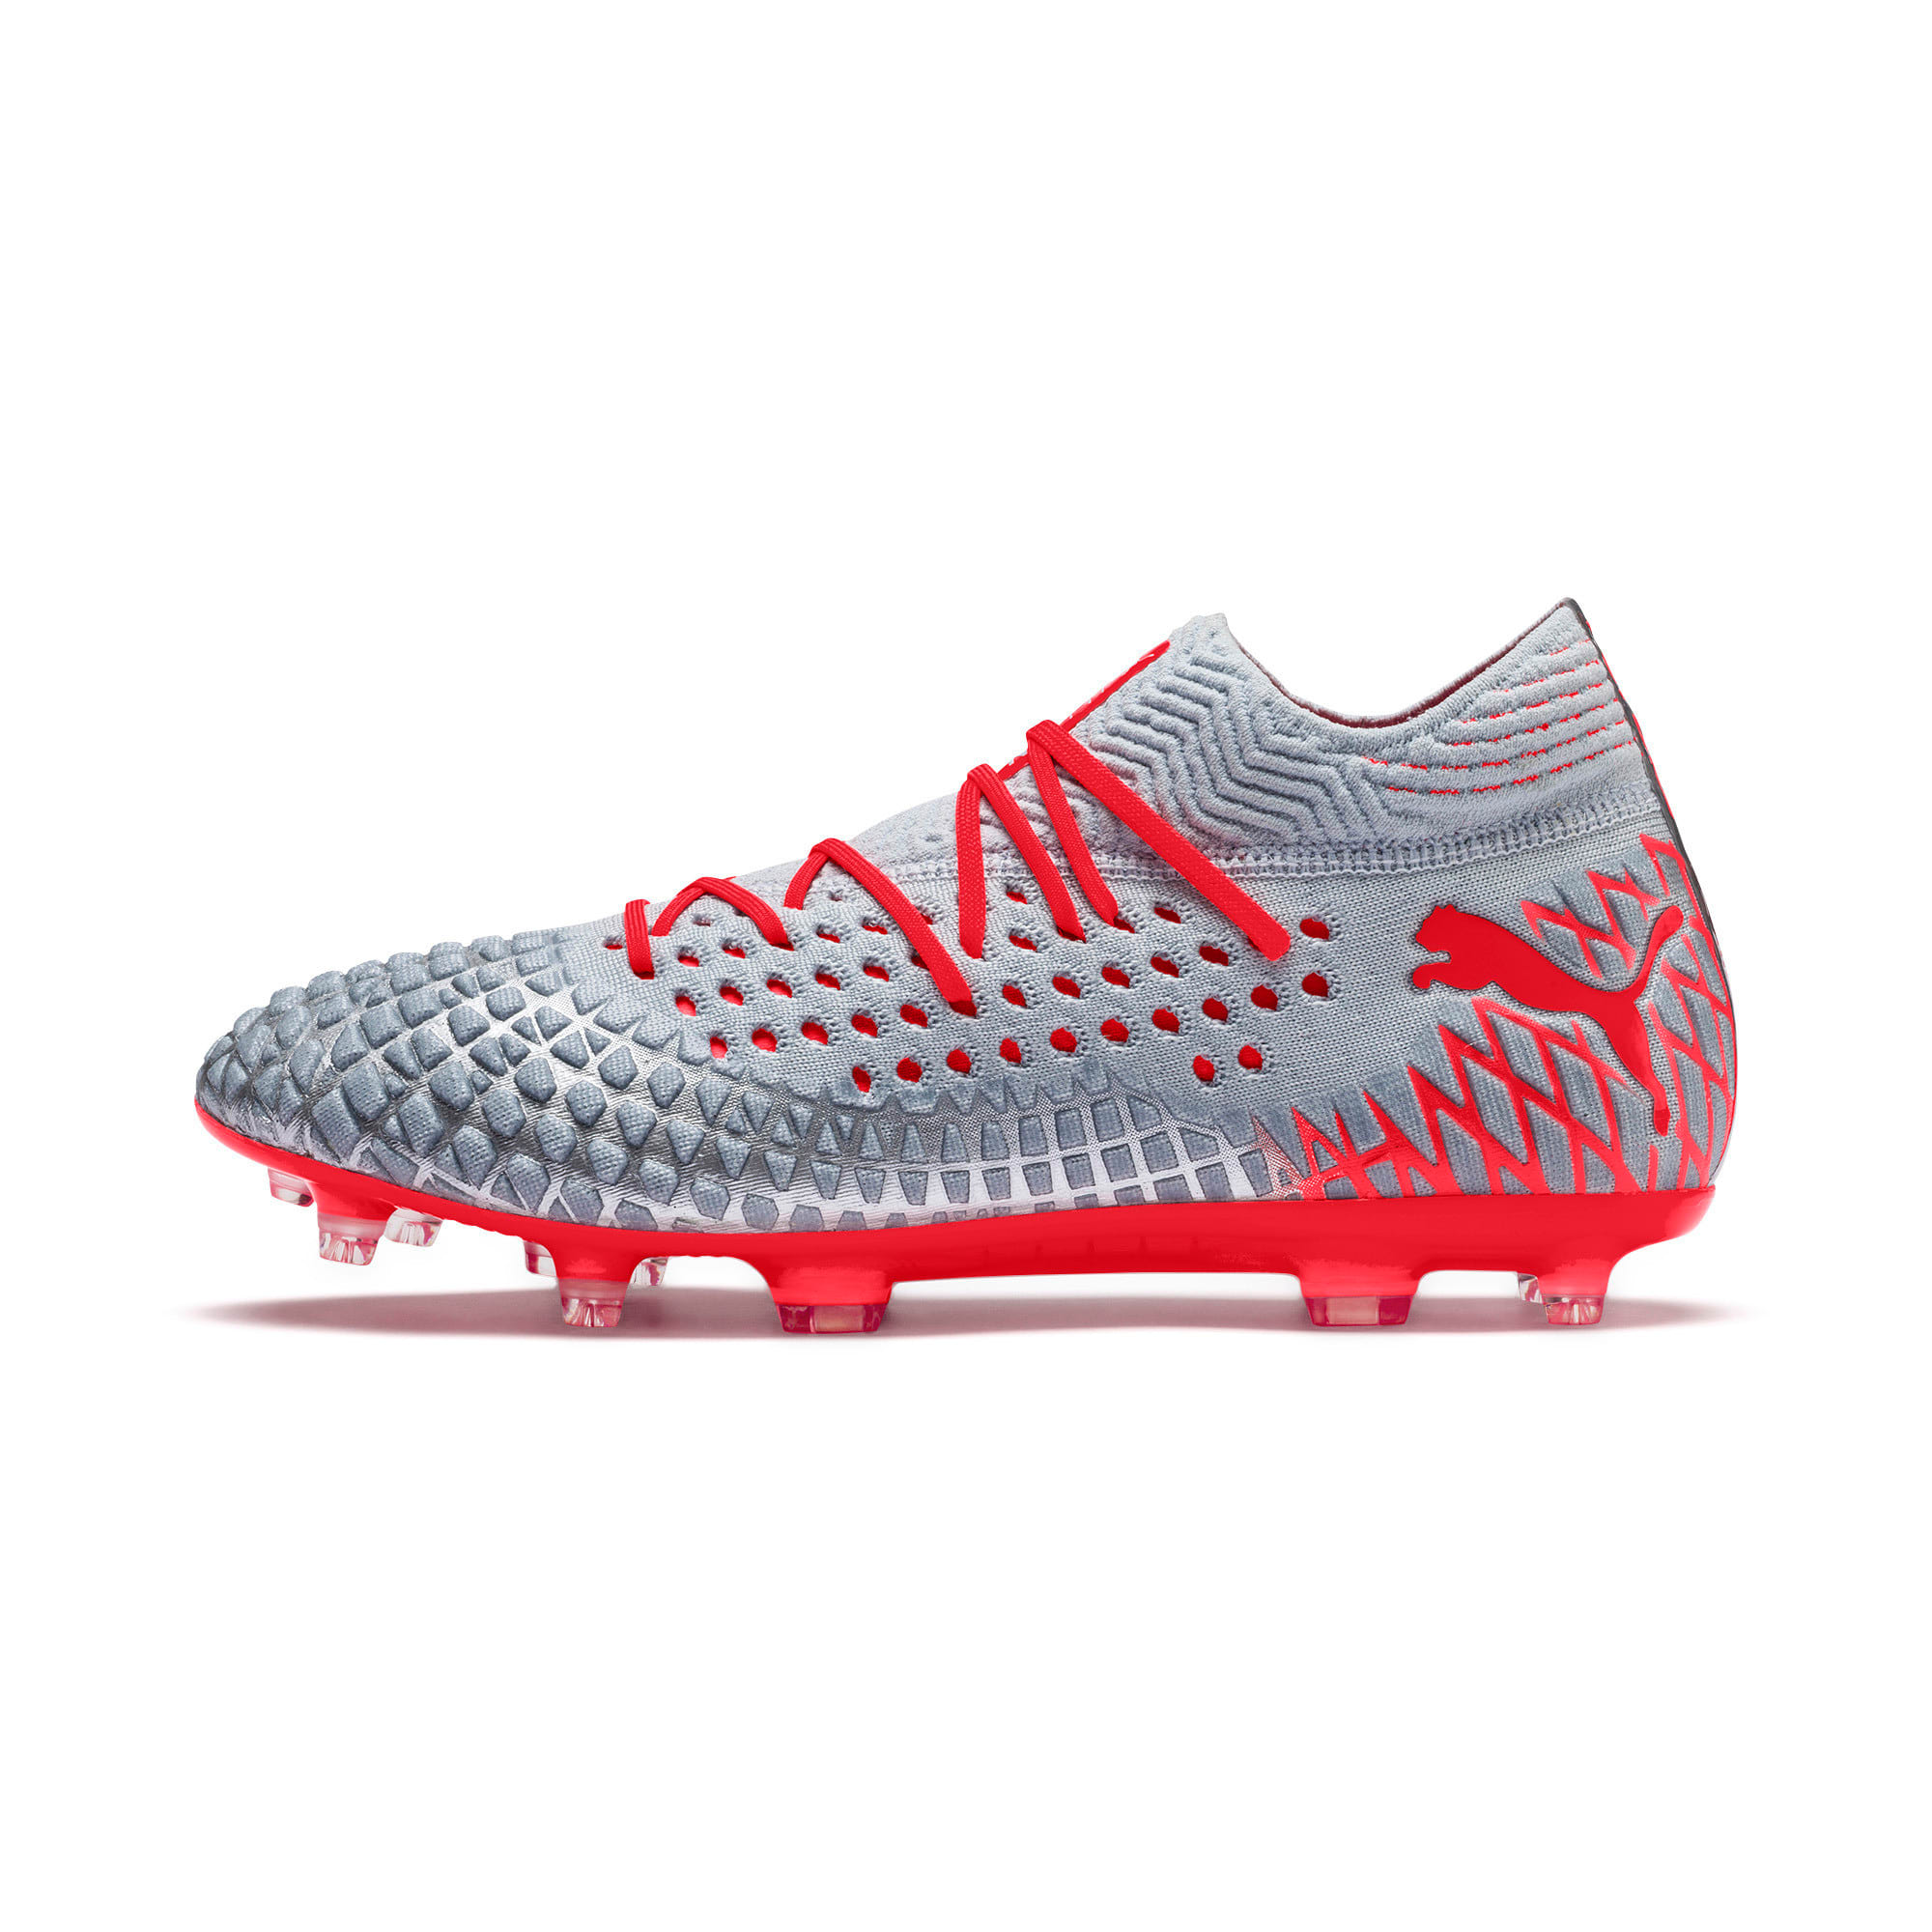 Thumbnail 1 of FUTURE 4.1 NETFIT FG/AG Herren Fußballschuhe, Blue-Nrgy Red-High Risk Red, medium